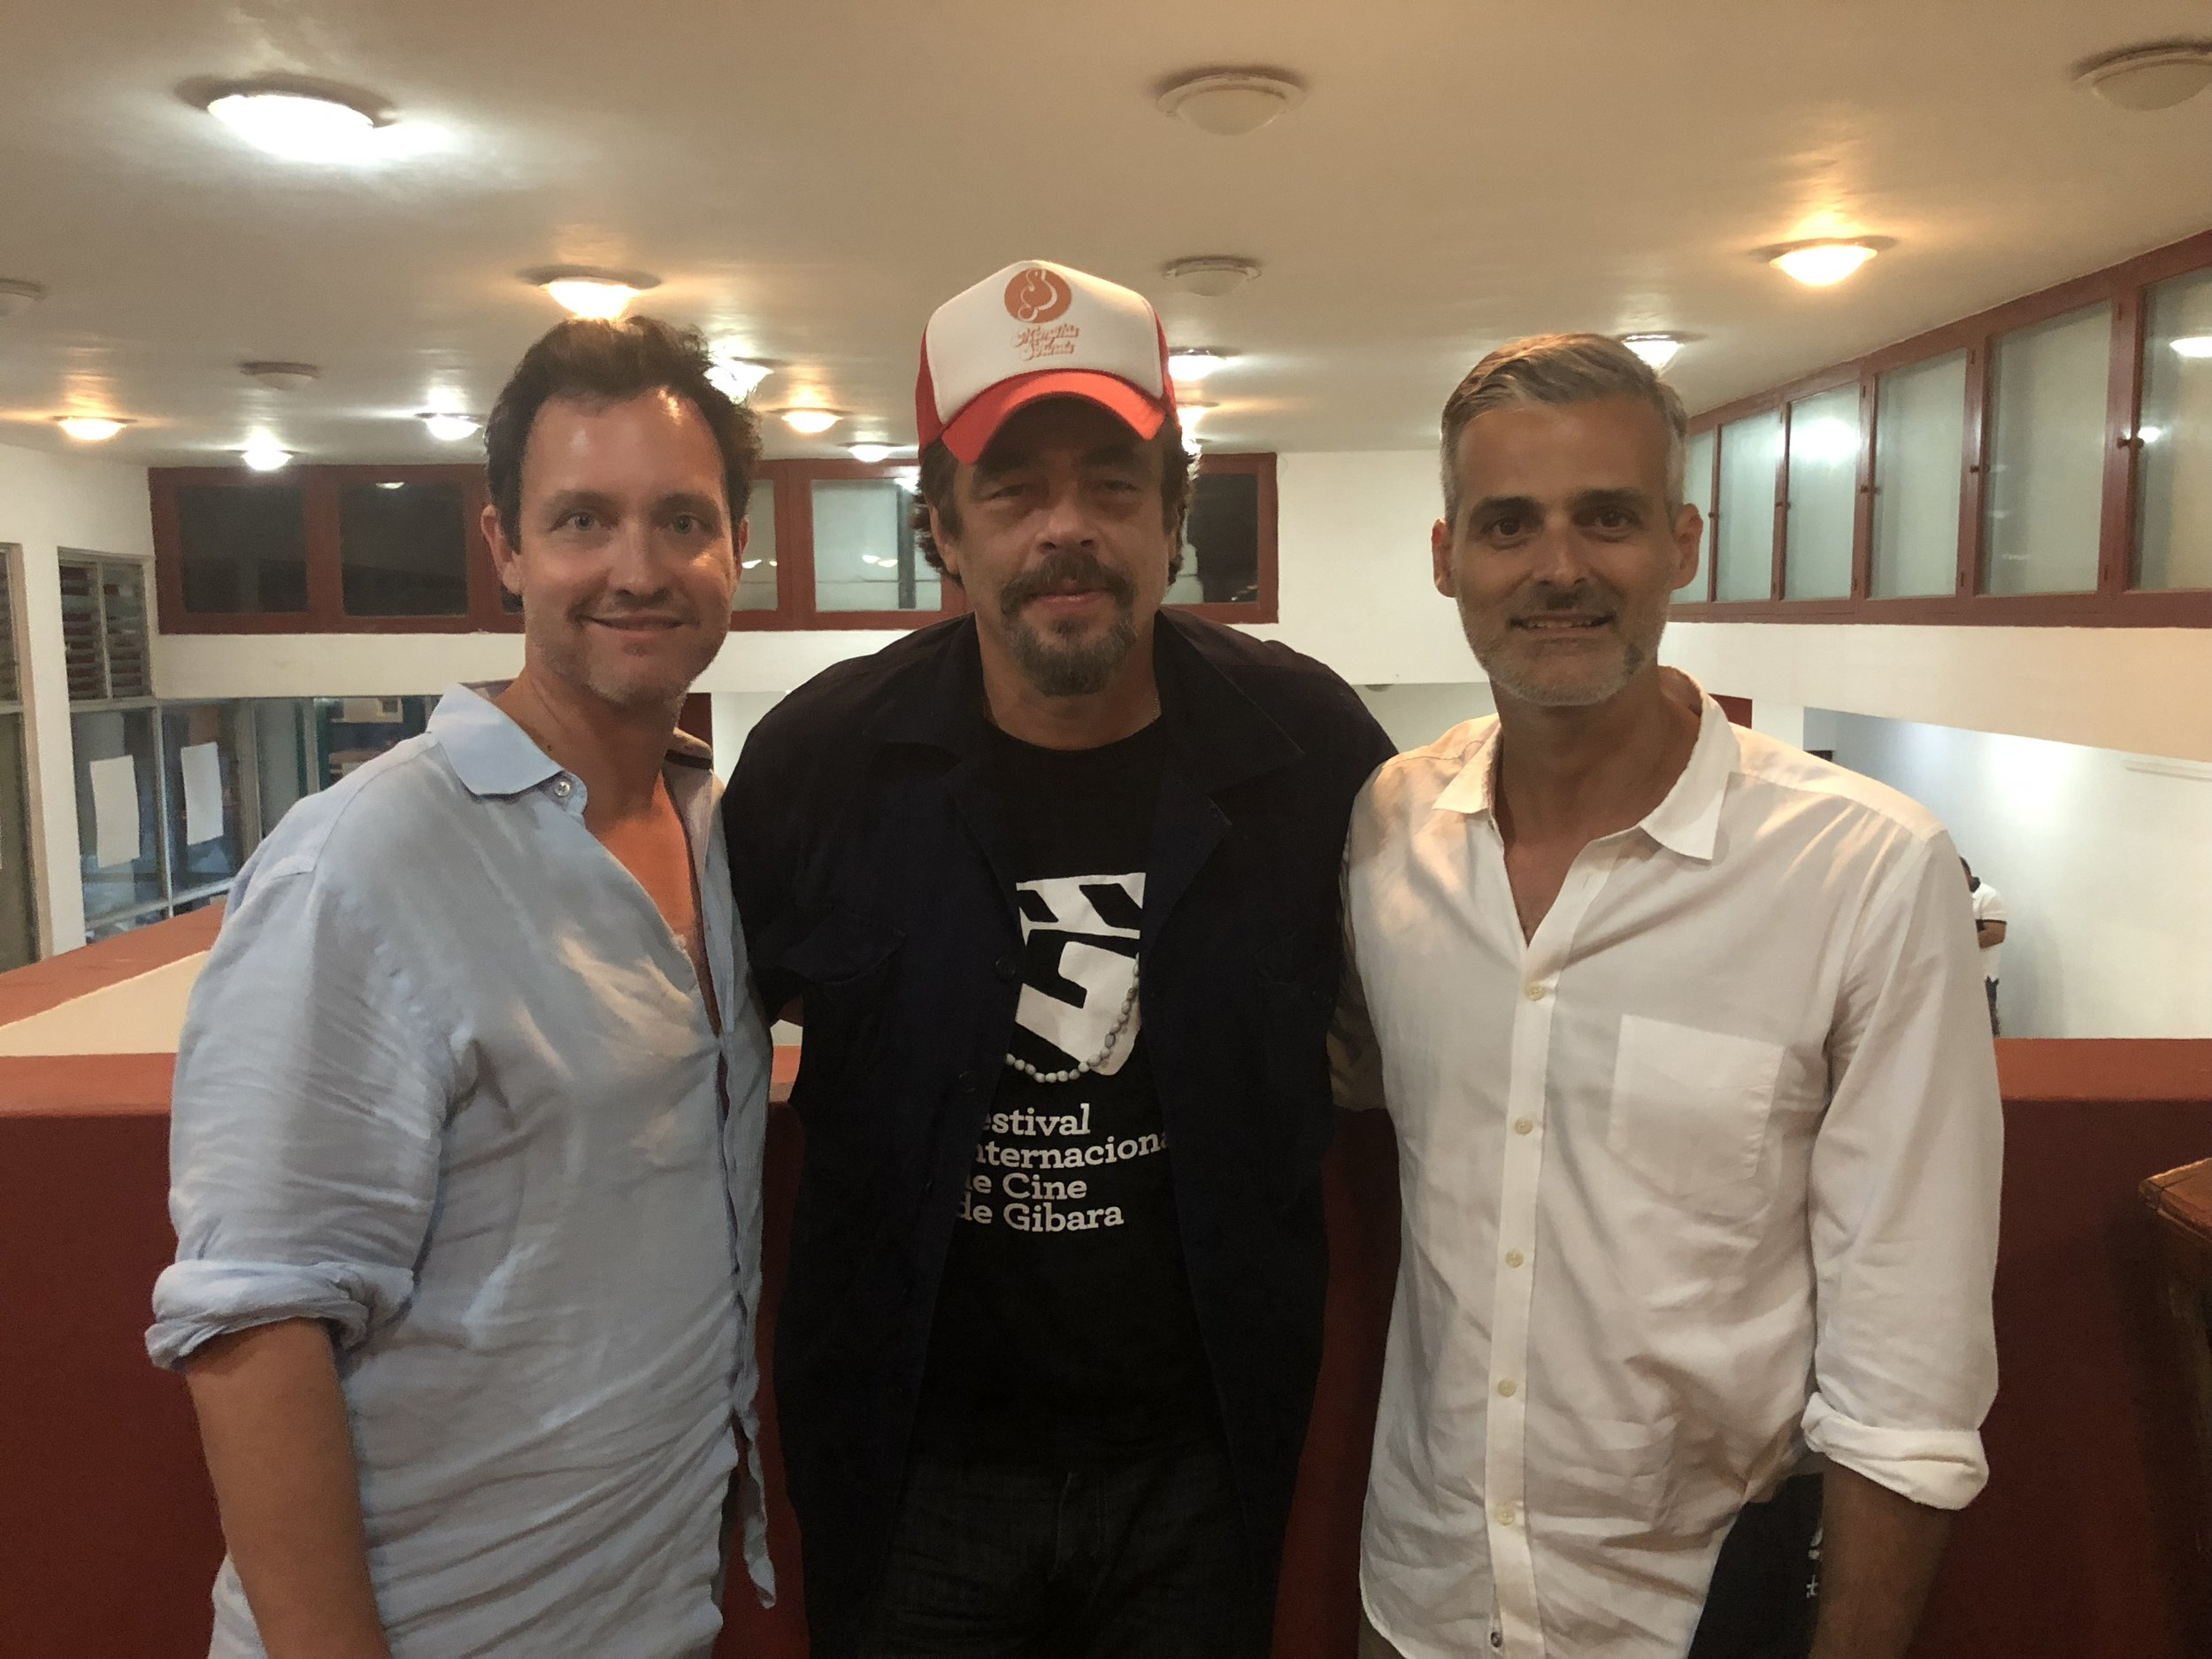 Benicio del Toro was once again the guest of honor at the festival.